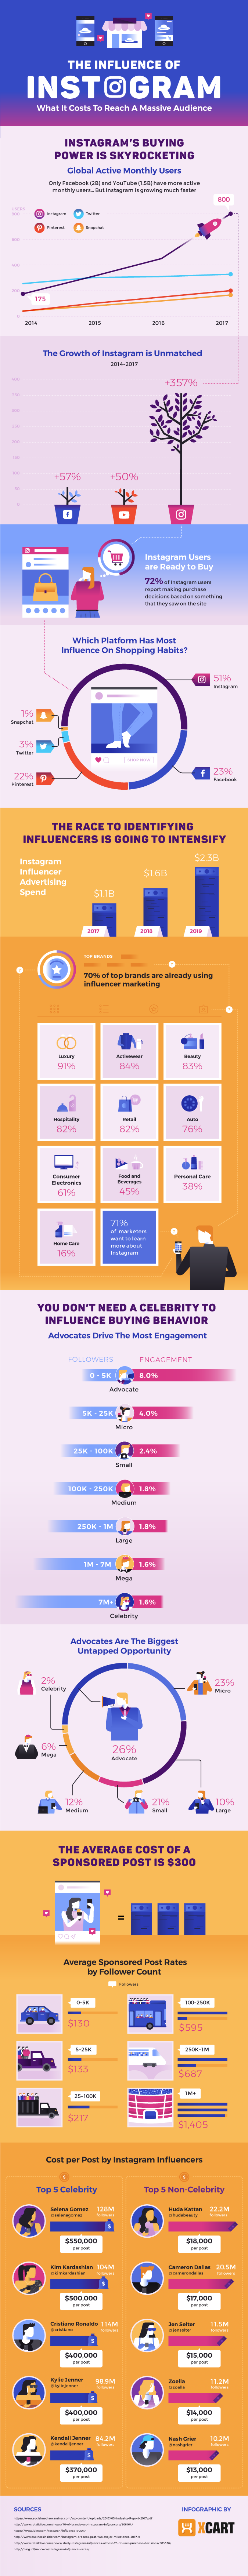 Infographic: Instagram Influence